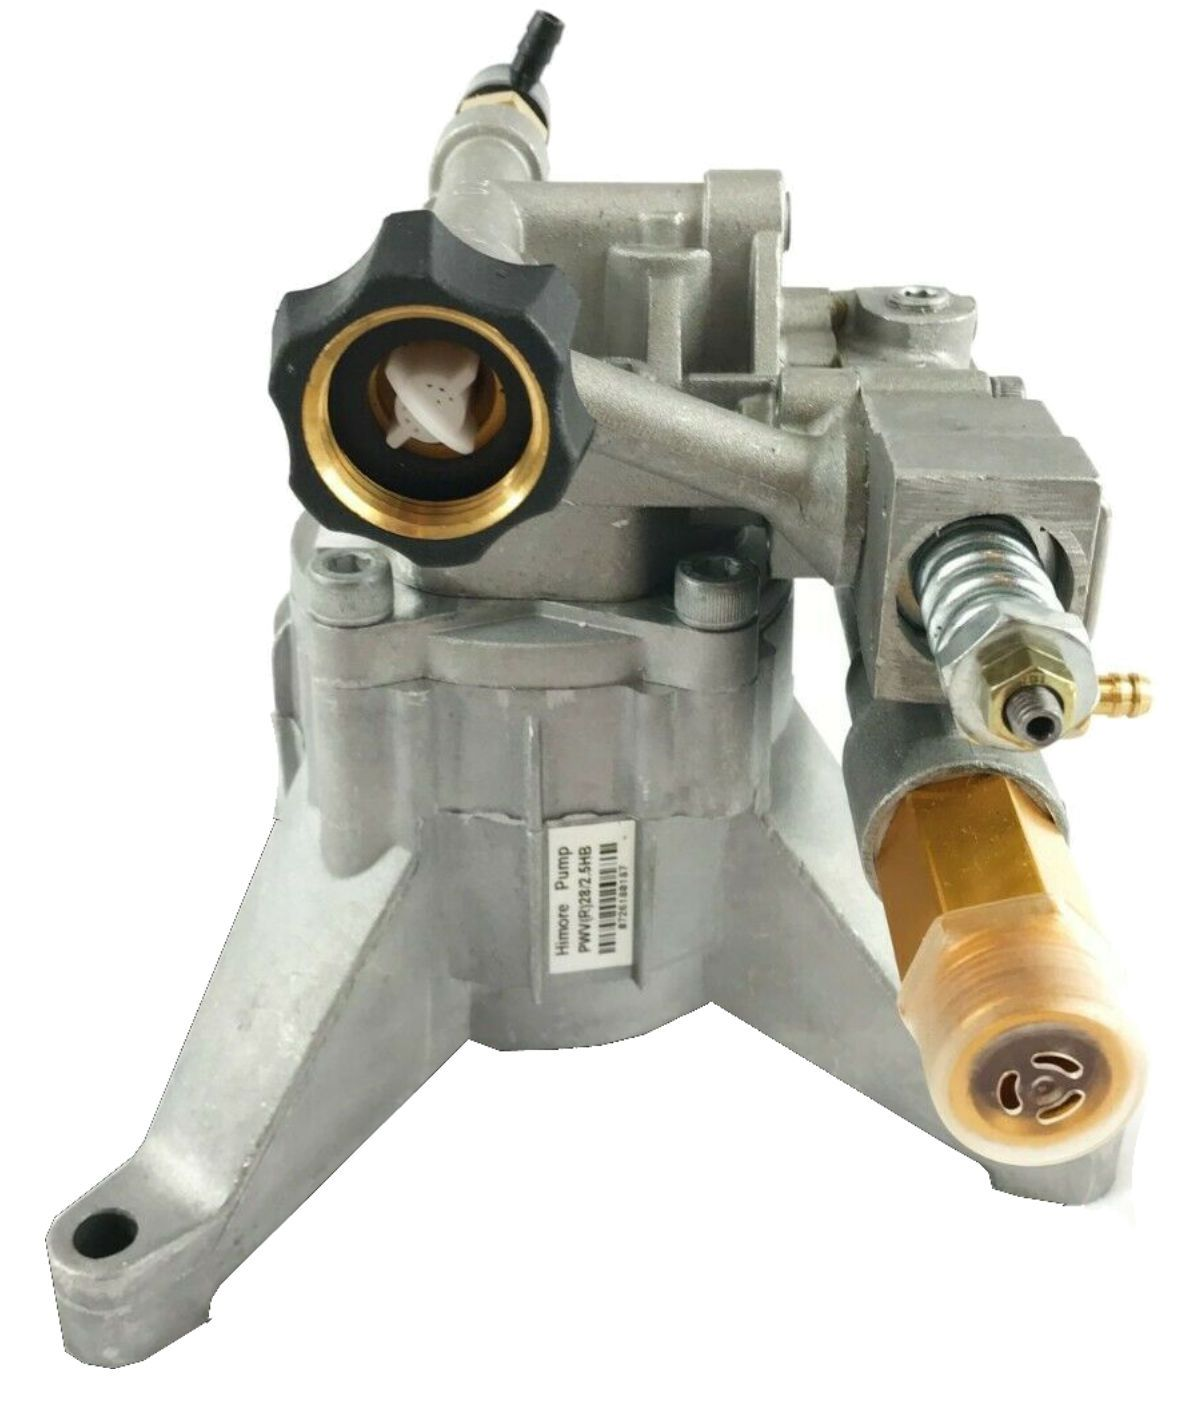 2700 PSI PRESSURE WASHER WATER PUMP Sears 580.768340 580.768341 - AE-Power